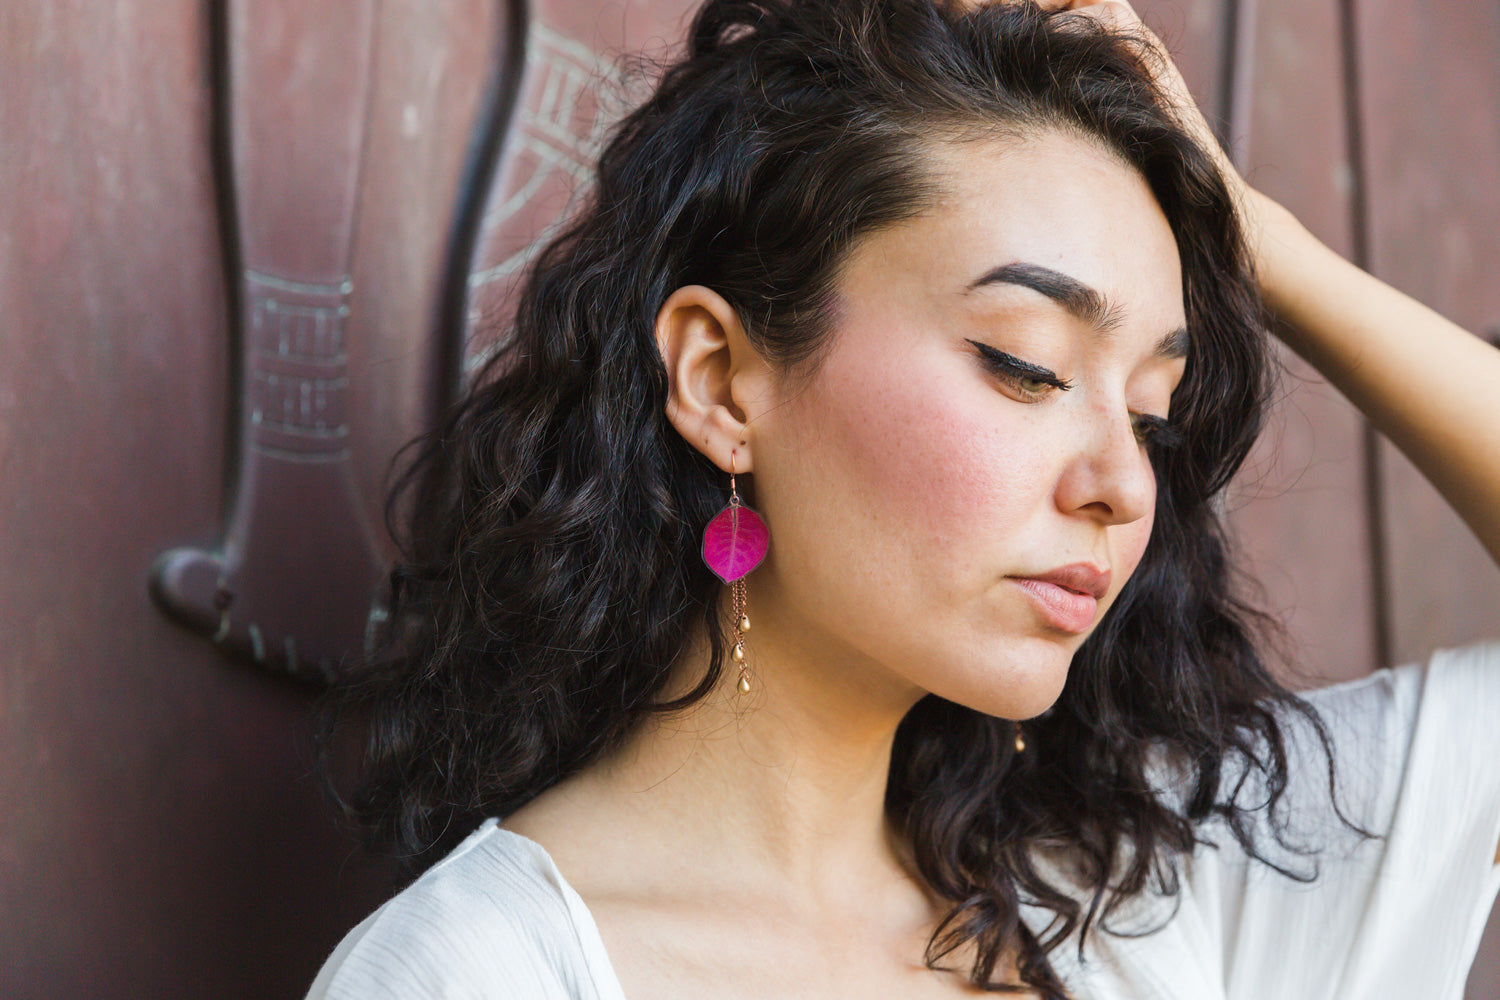 Fuchsia Bougainvillea Petal Earrings with Metallic Teardrops